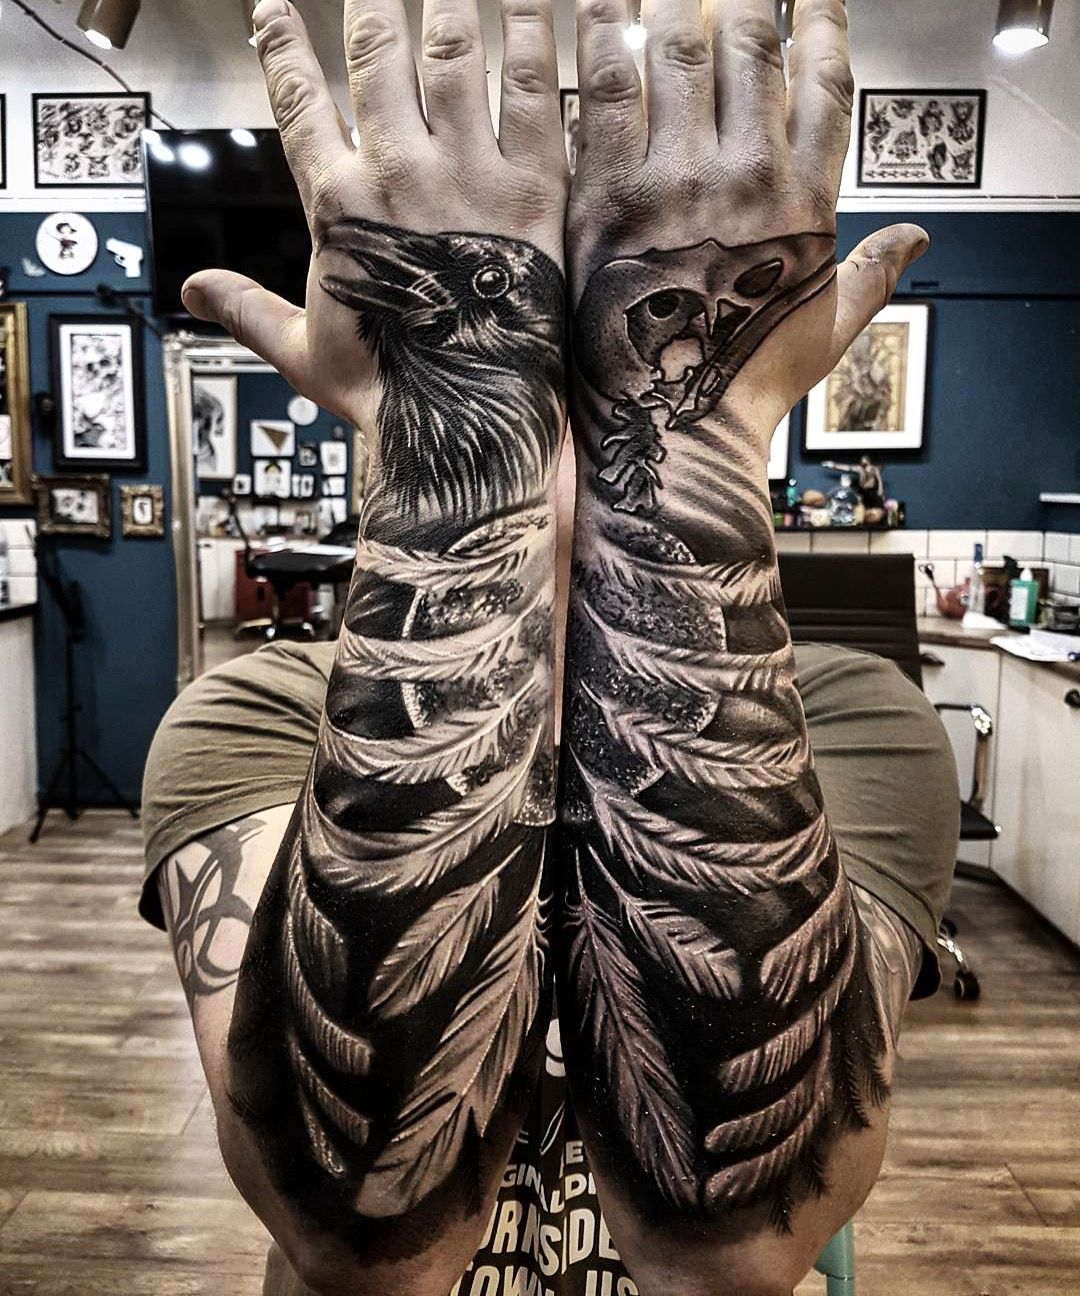 tattoo eddyink9 tattoos pinterest coole tattoos. Black Bedroom Furniture Sets. Home Design Ideas